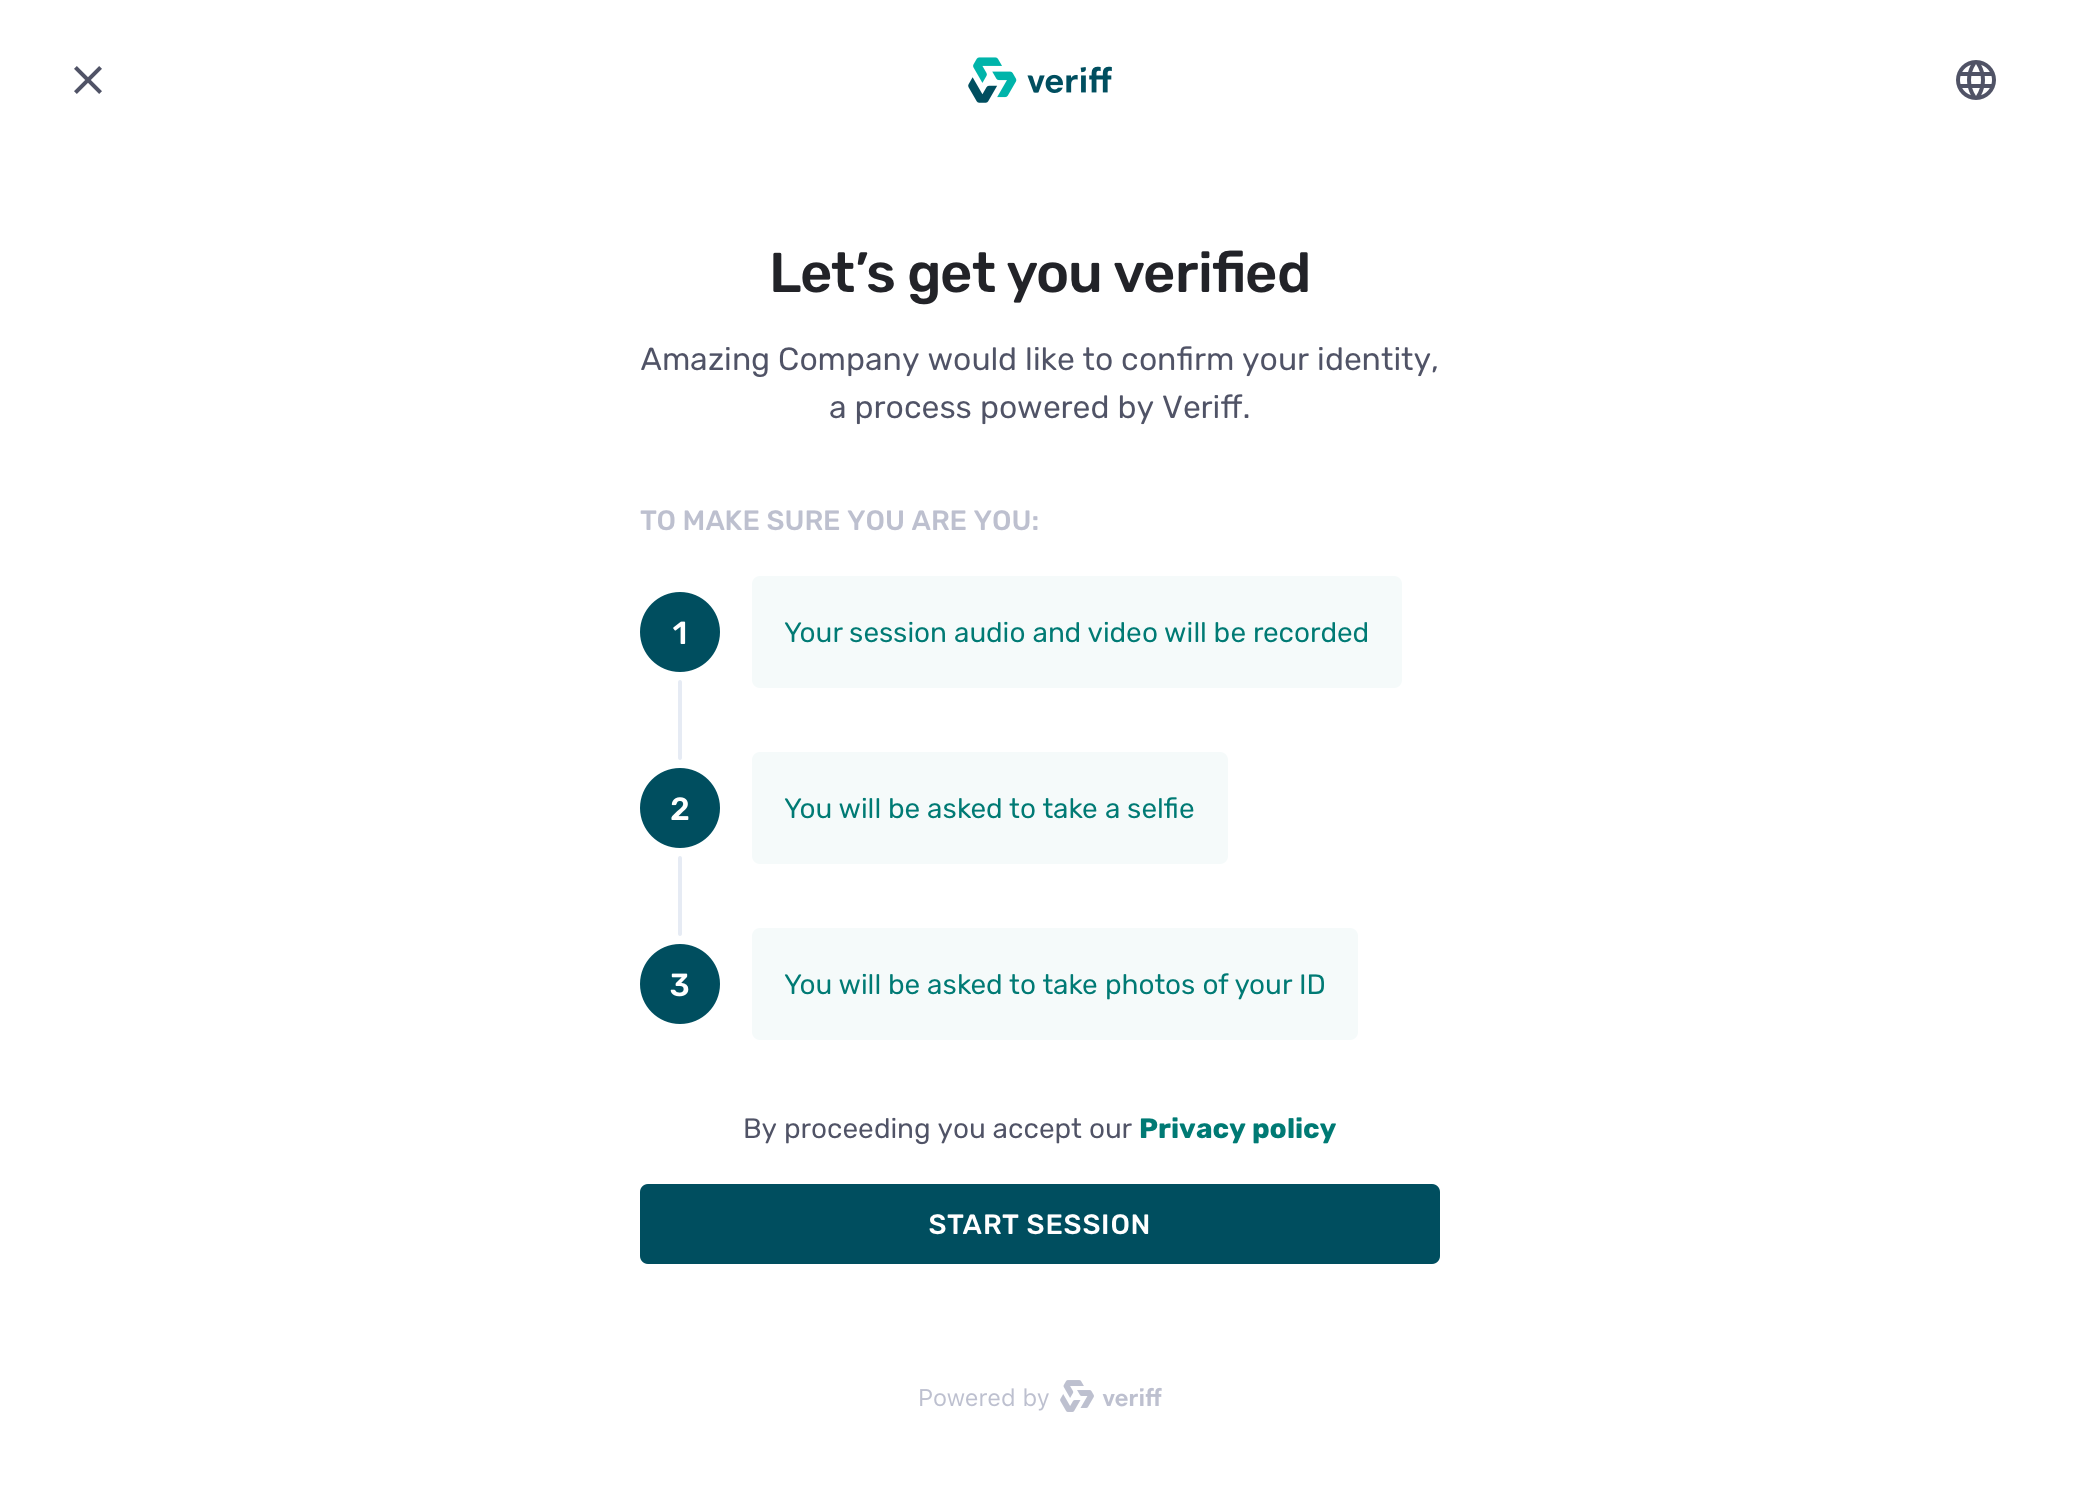 Veriff's new identity verification platform for web users